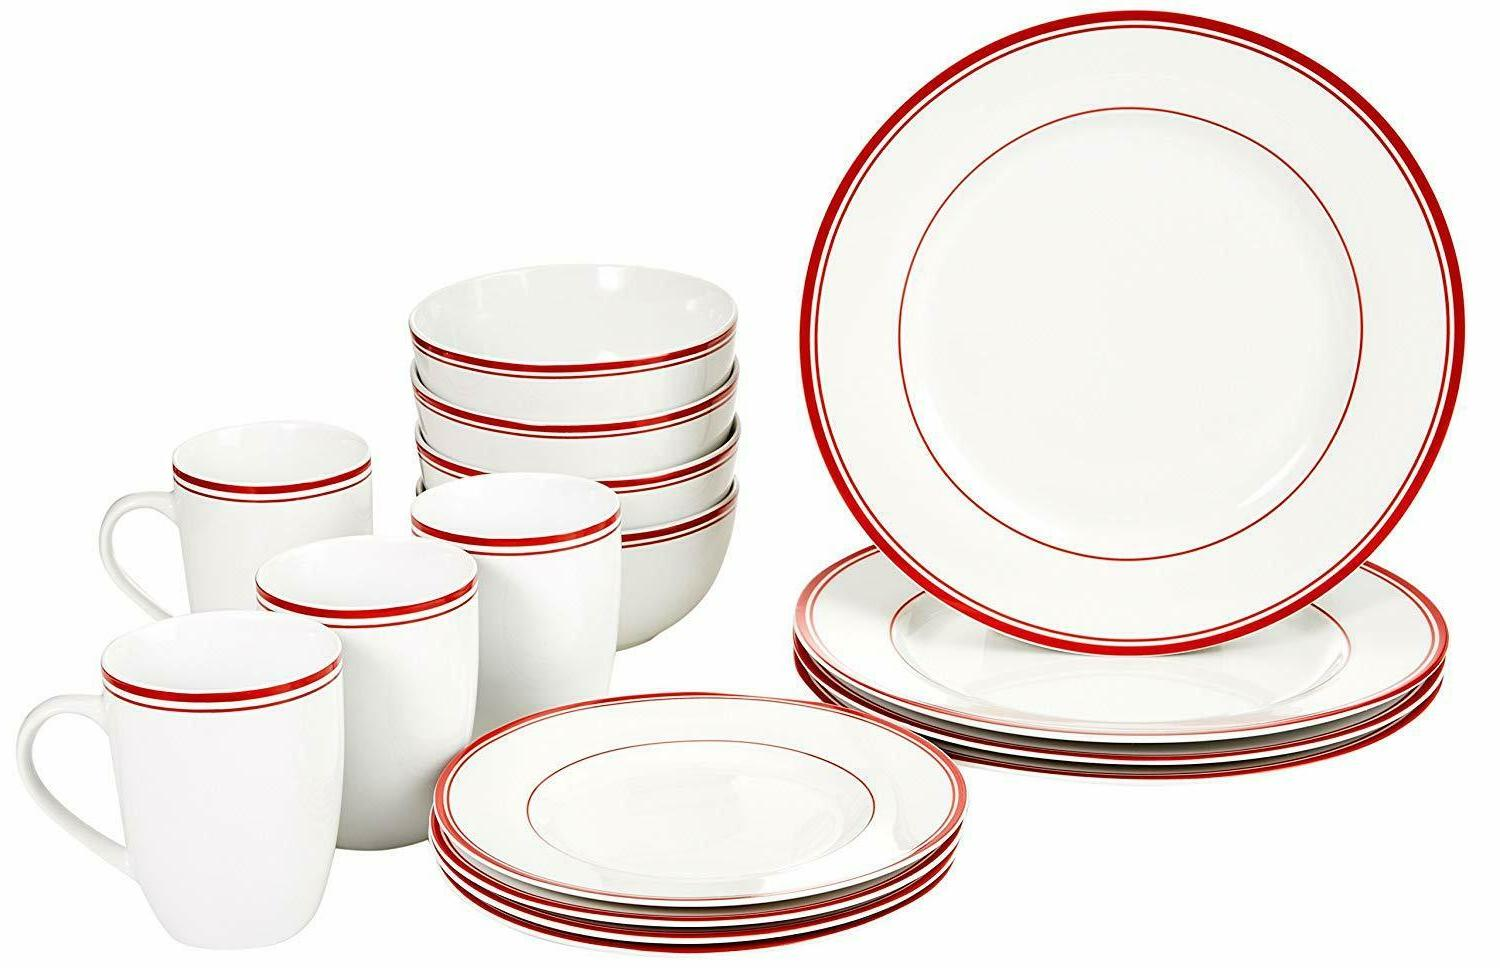 AmazonBasics 16-Piece Cafe Stripe Kitchen Dinnerware Set, Pl